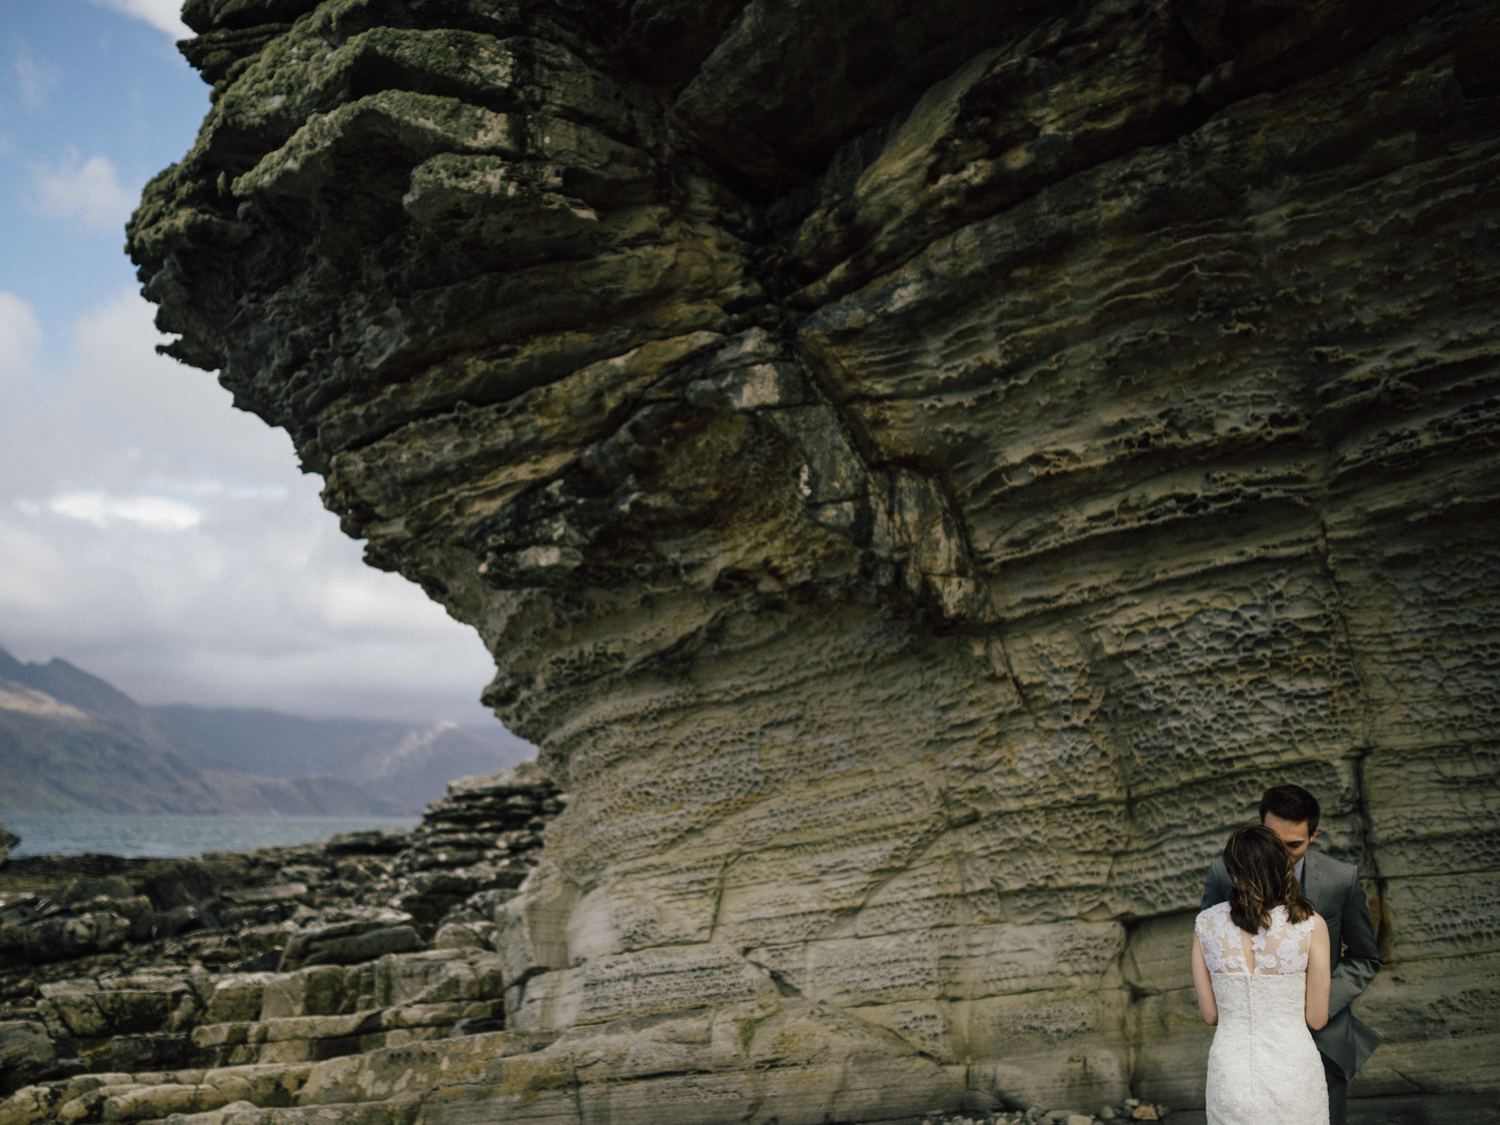 capyture-wedding-photographer-destination-elopement-isle-skye-scotland-242